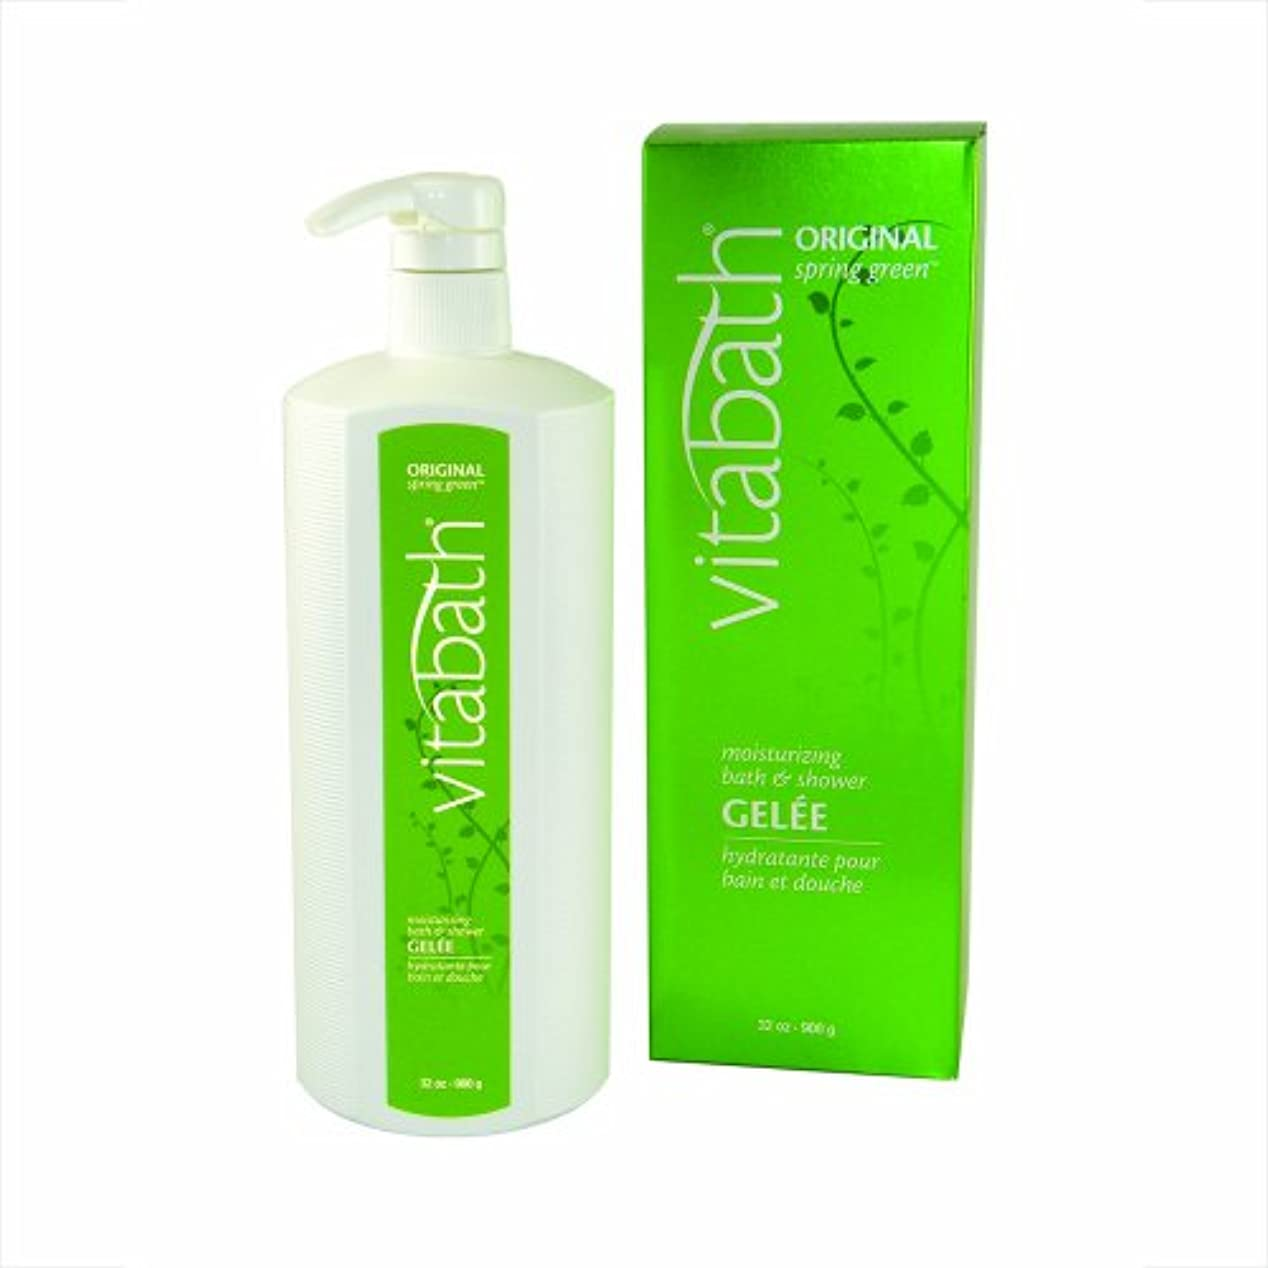 寛大な復活させる旅行代理店Vitabath Original Spring Green Moisturizing Bath & Shower Gelee 32 oz bath gel by Vitabath